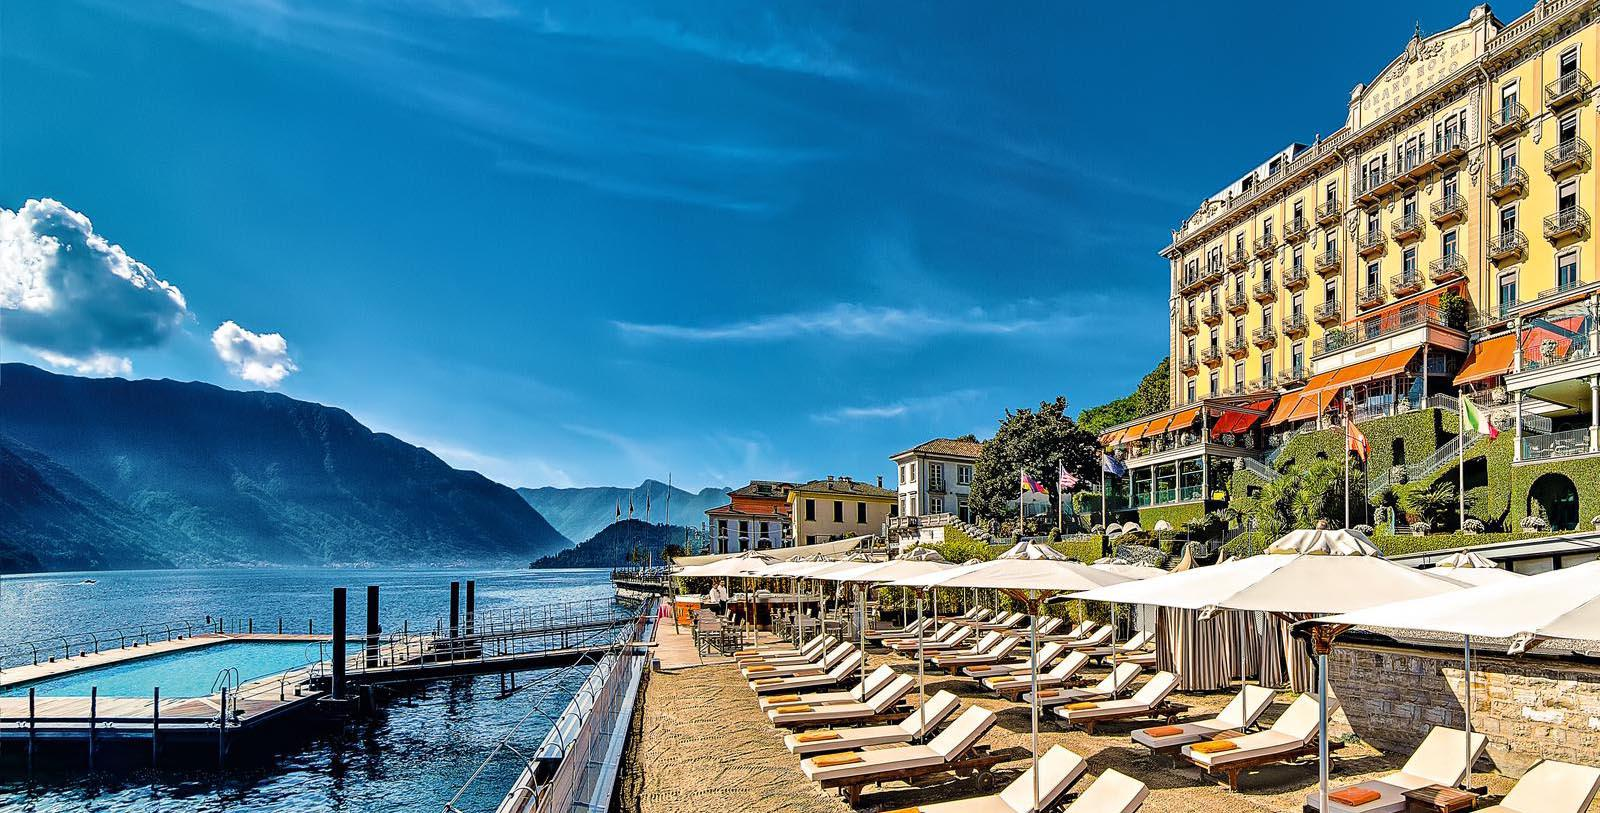 Image of spa infinity pool and lounge at the Grand Hotel Tremezzo at Lake Como, Italy.